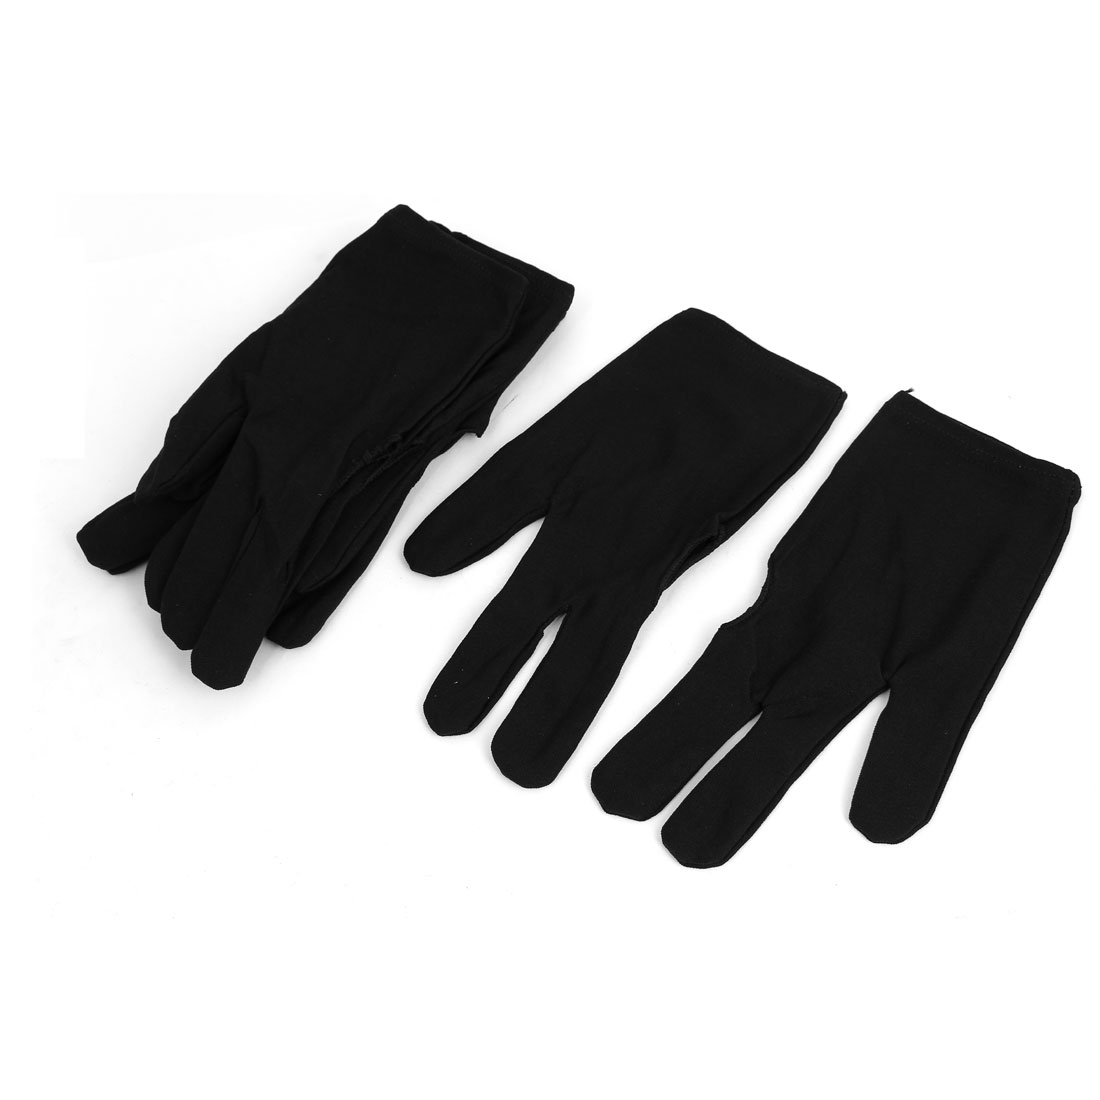 4 Pairs Black Elastic Sport Billiard 3 Fingers Gloves for Pool Cue